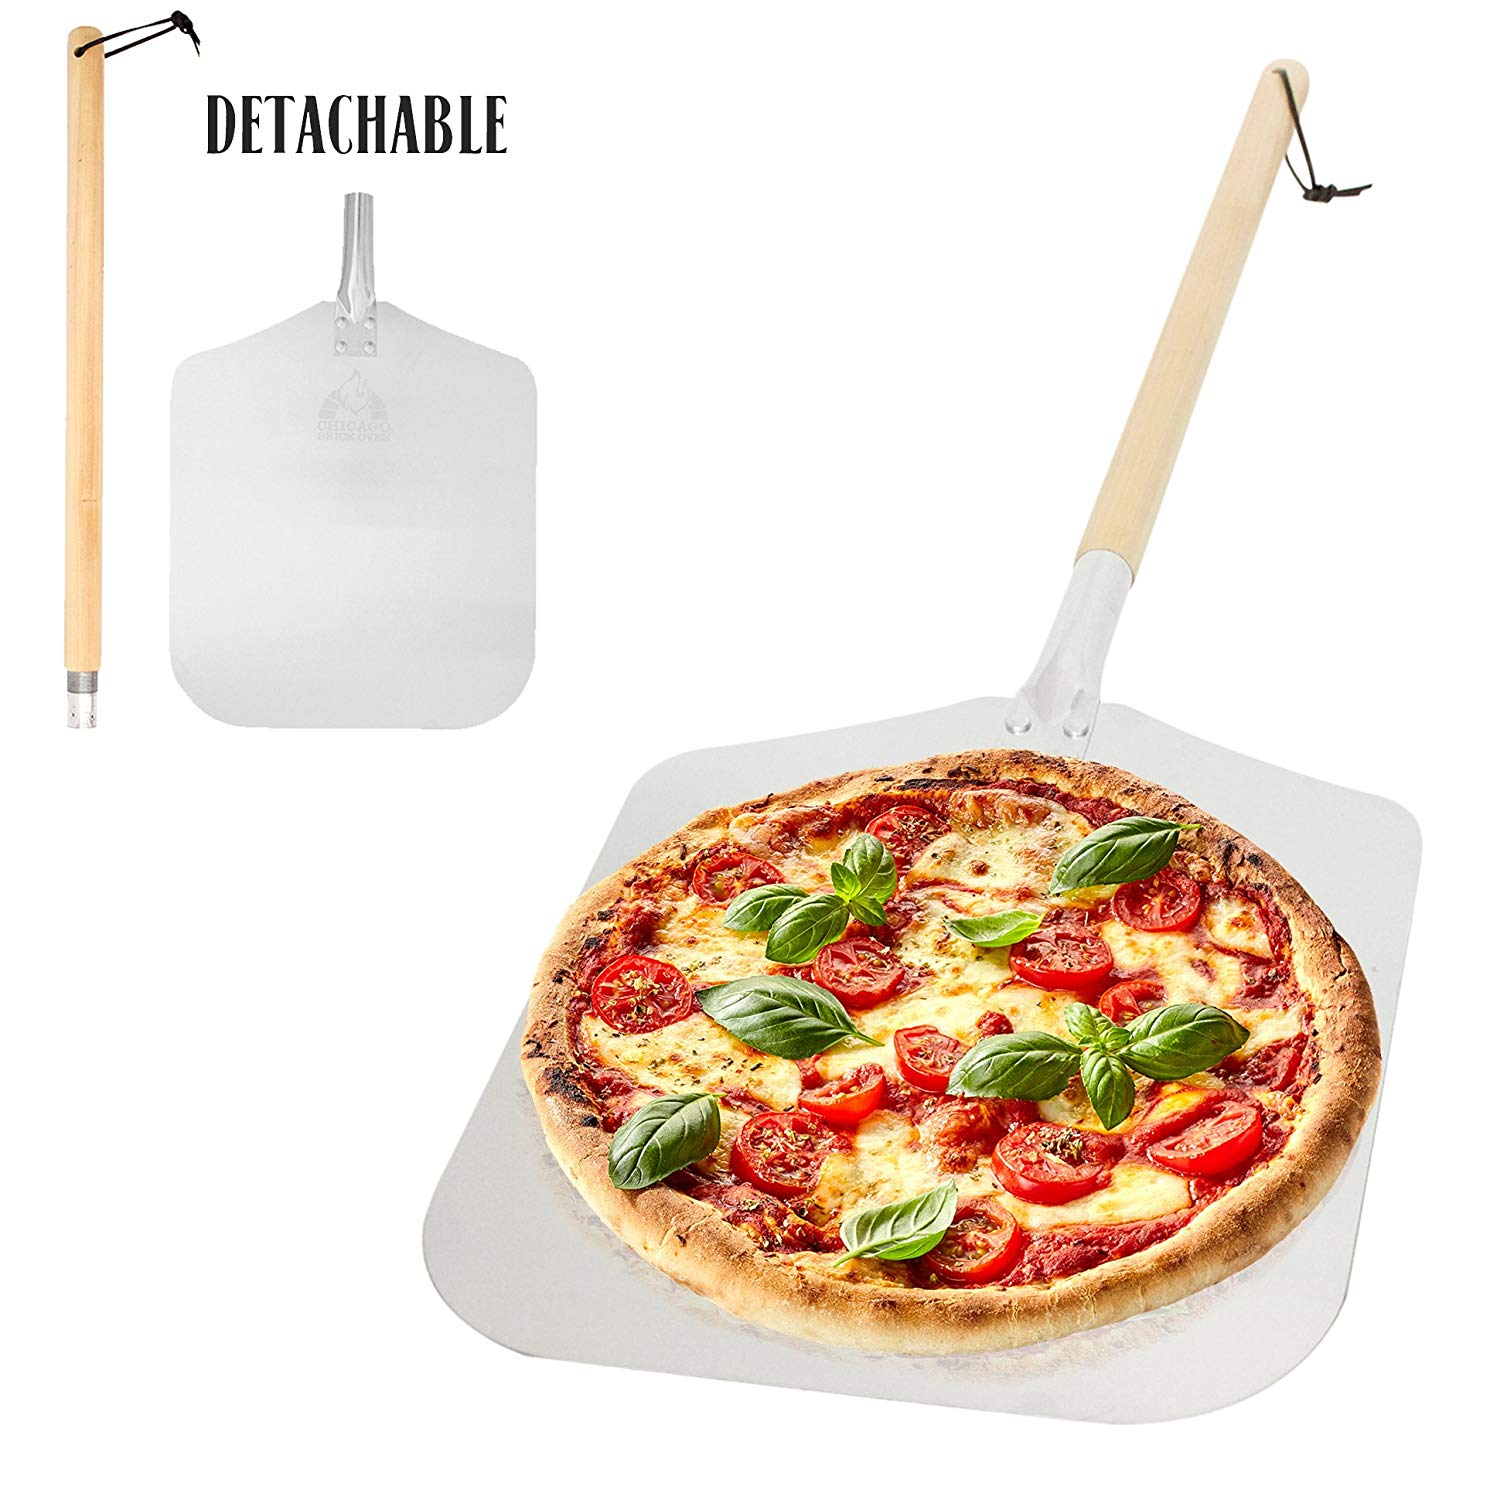 """Aluminum Pizza Peel Paddle with Detachable Wooden Handle, 12"""" x 14"""" inch Blade, Long 21.5"""" Handle with Leather Strap, 35.5 inch overall - Outdoor Pizza Oven Accessories"""